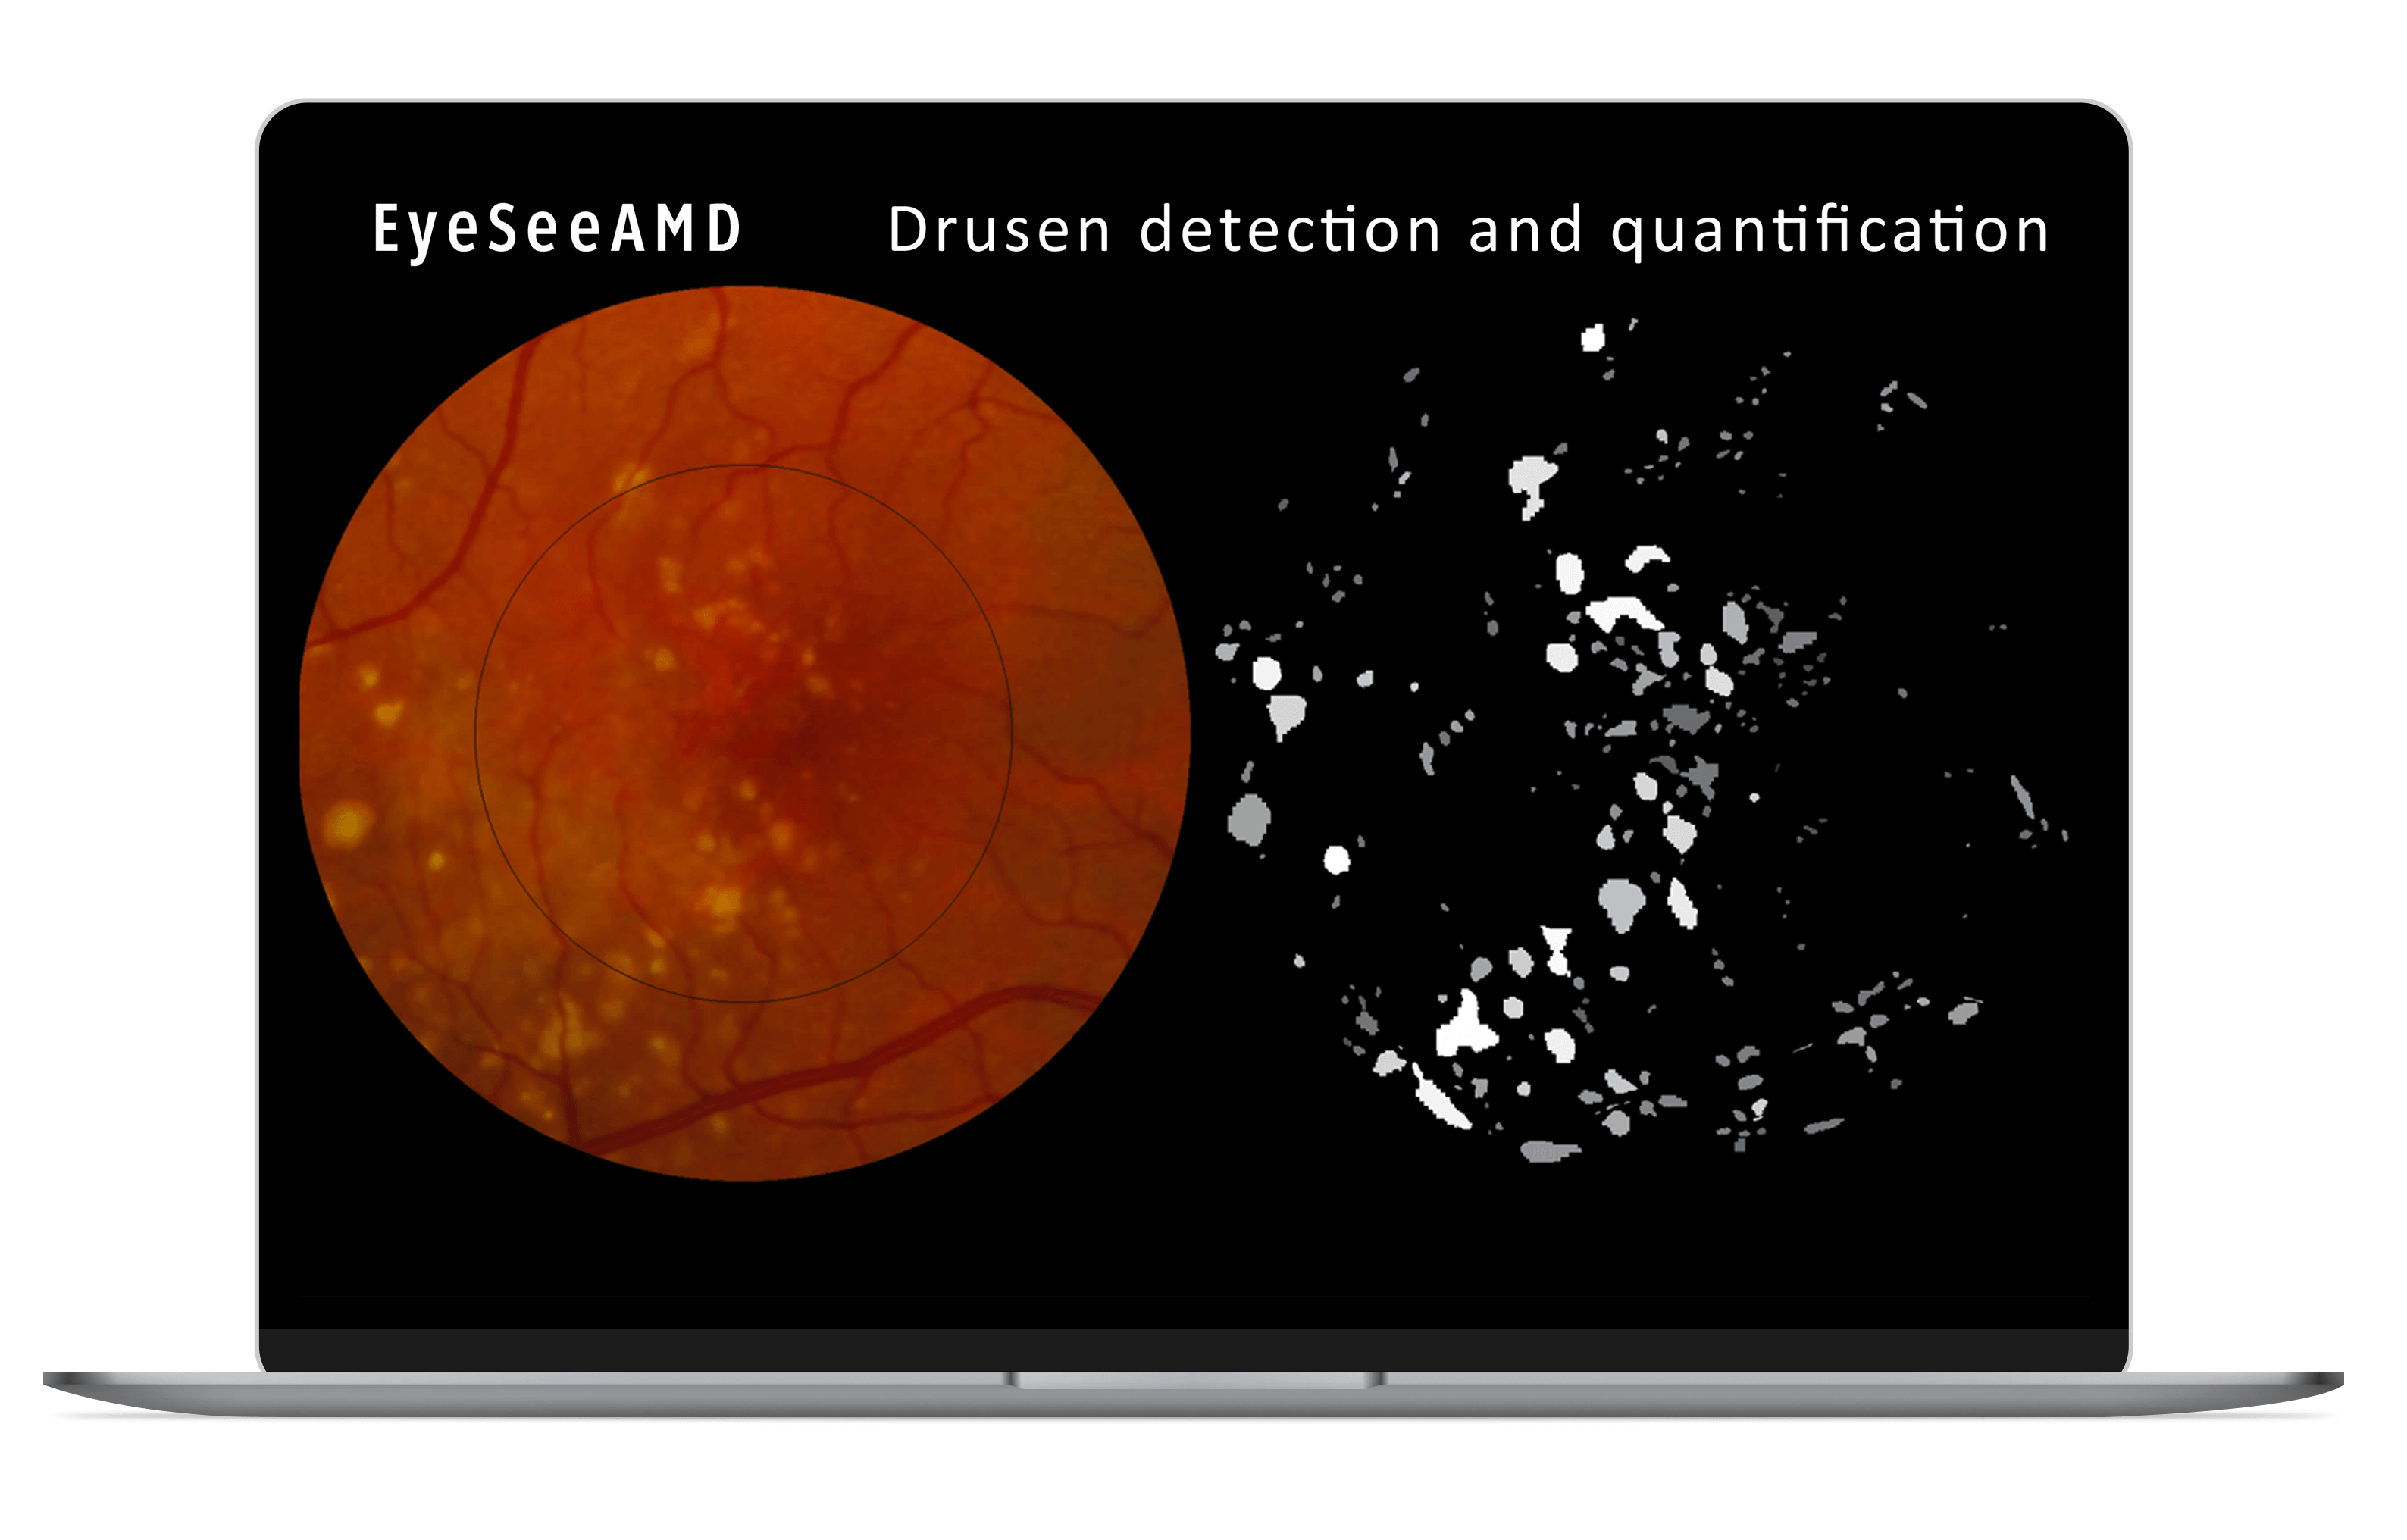 EyeSeeAMD_Macbook_mocup